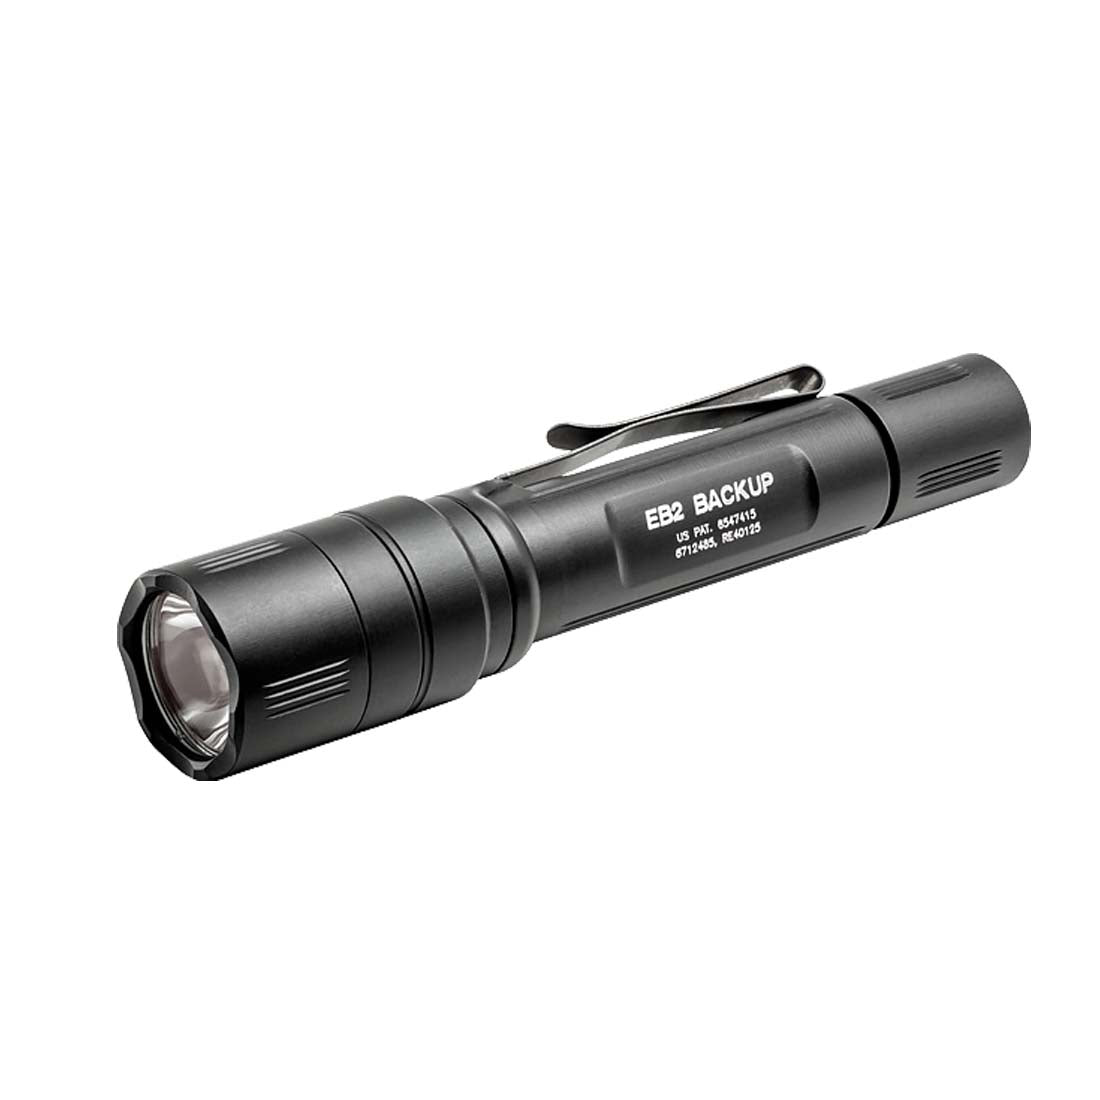 Surefire EB2 Backup Ultra High Dual Output Led Flashlight